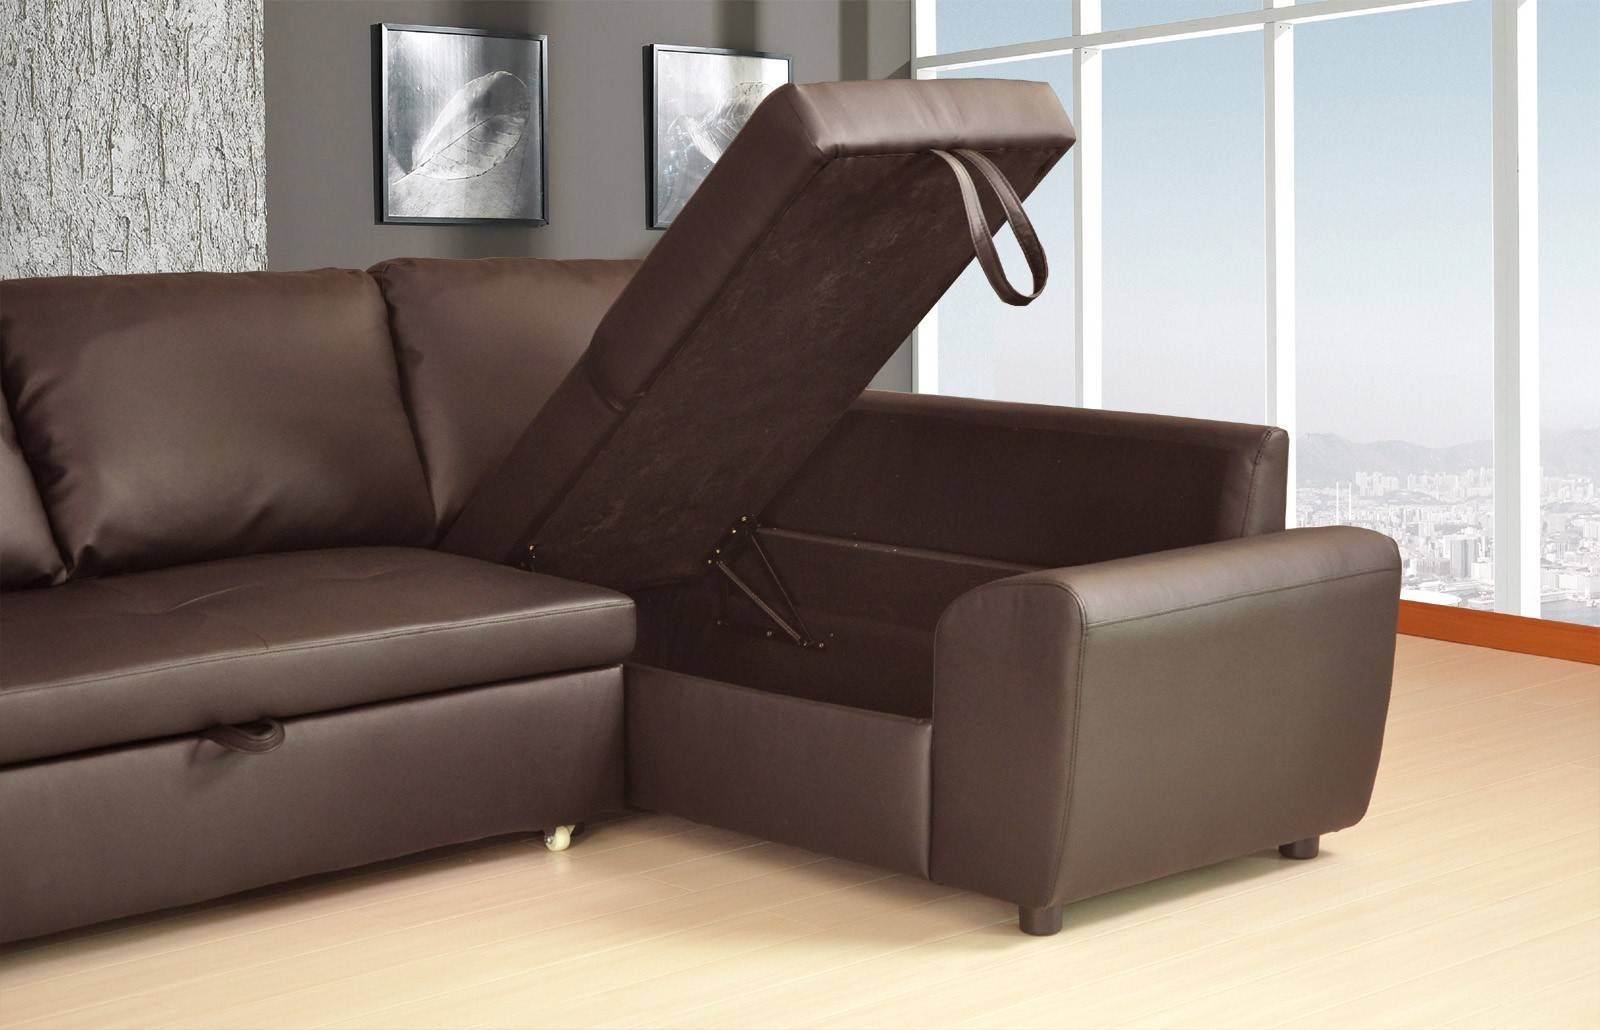 Siena Corner Sofa Bed - Leather Sectional Sofa throughout Leather Corner Sofa Bed (Image 27 of 30)